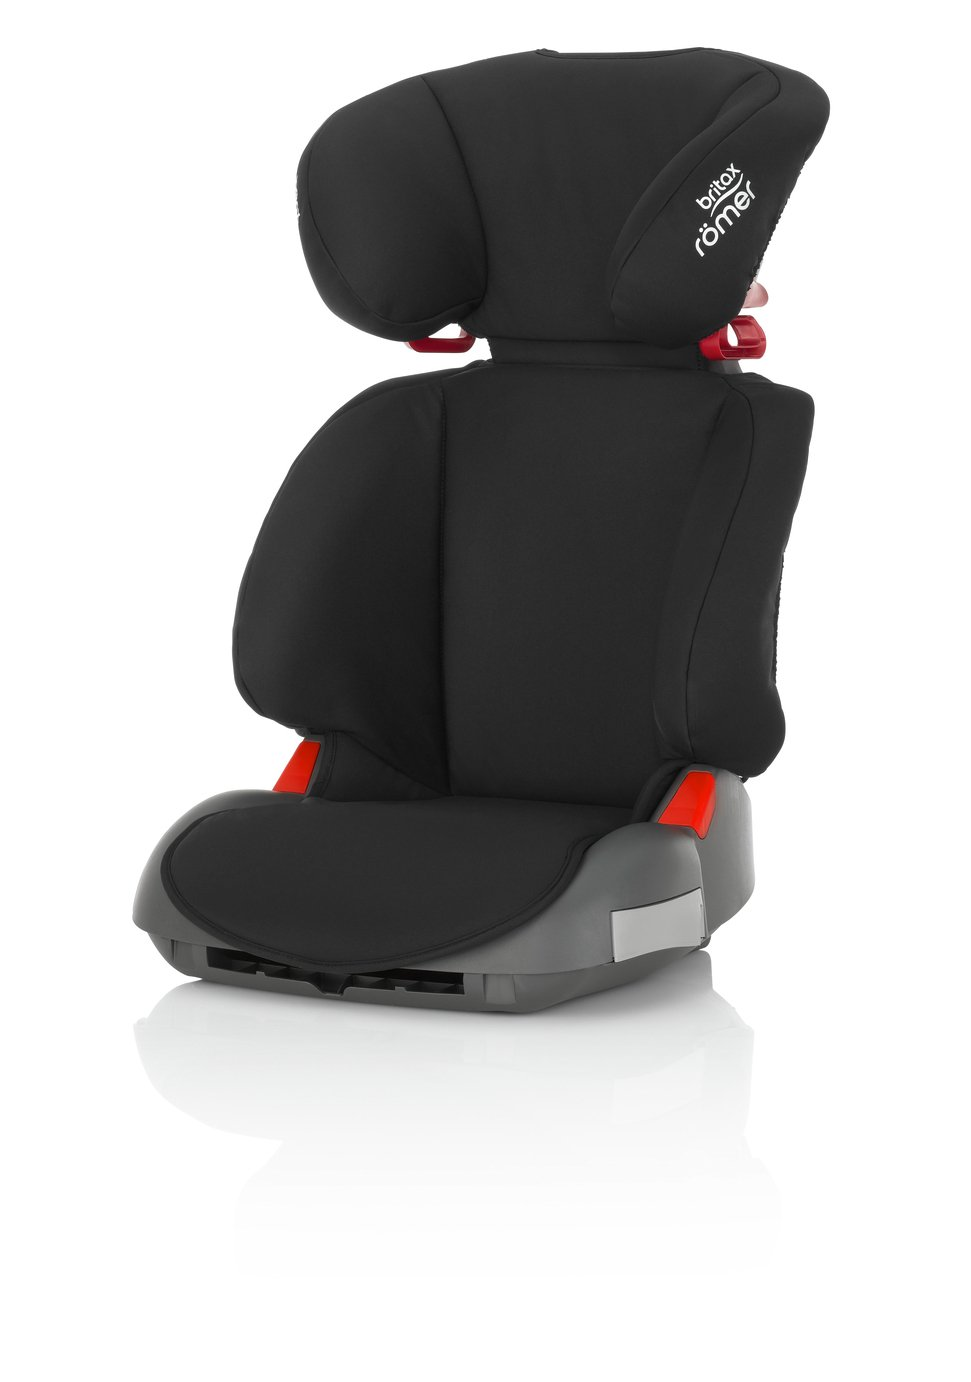 Image of Britax Adventure-Group 2-3 Black - Car Seat